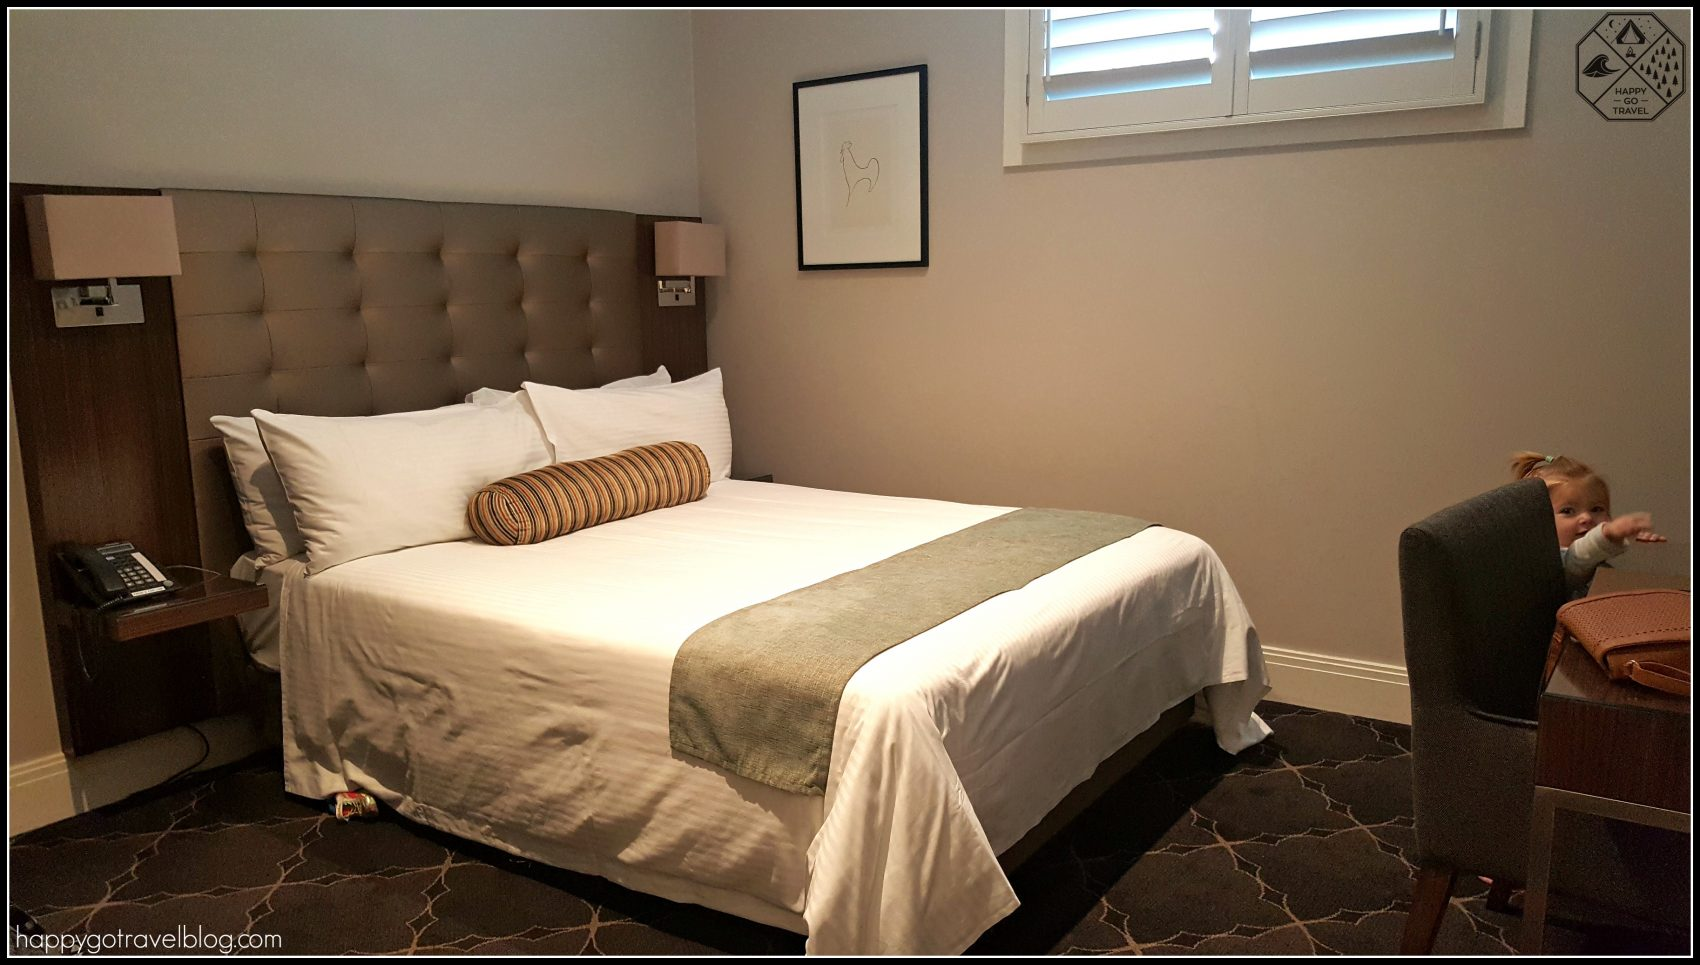 Royal Hotel Randwick review Sydney hotel room